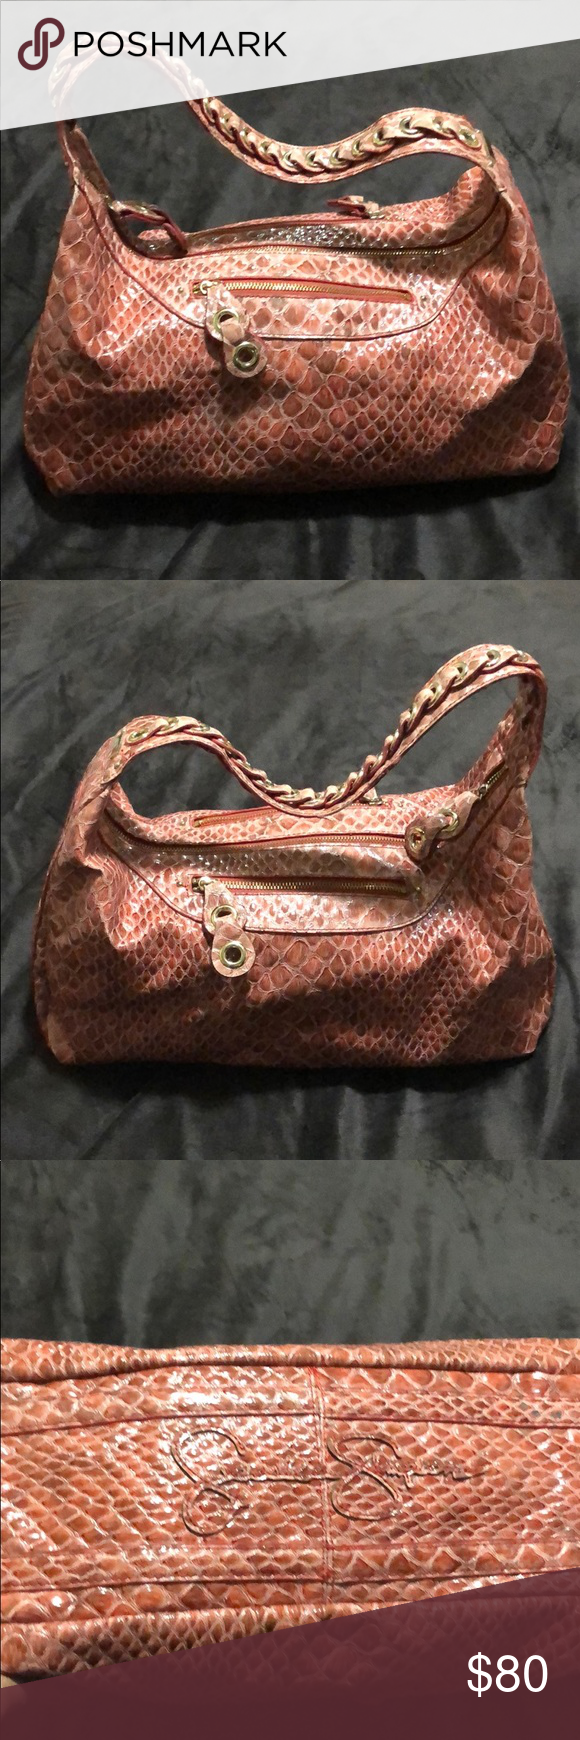 Jessica Simpson handbag Red shiny croc hand bag with silver hardware. Zip top cl…